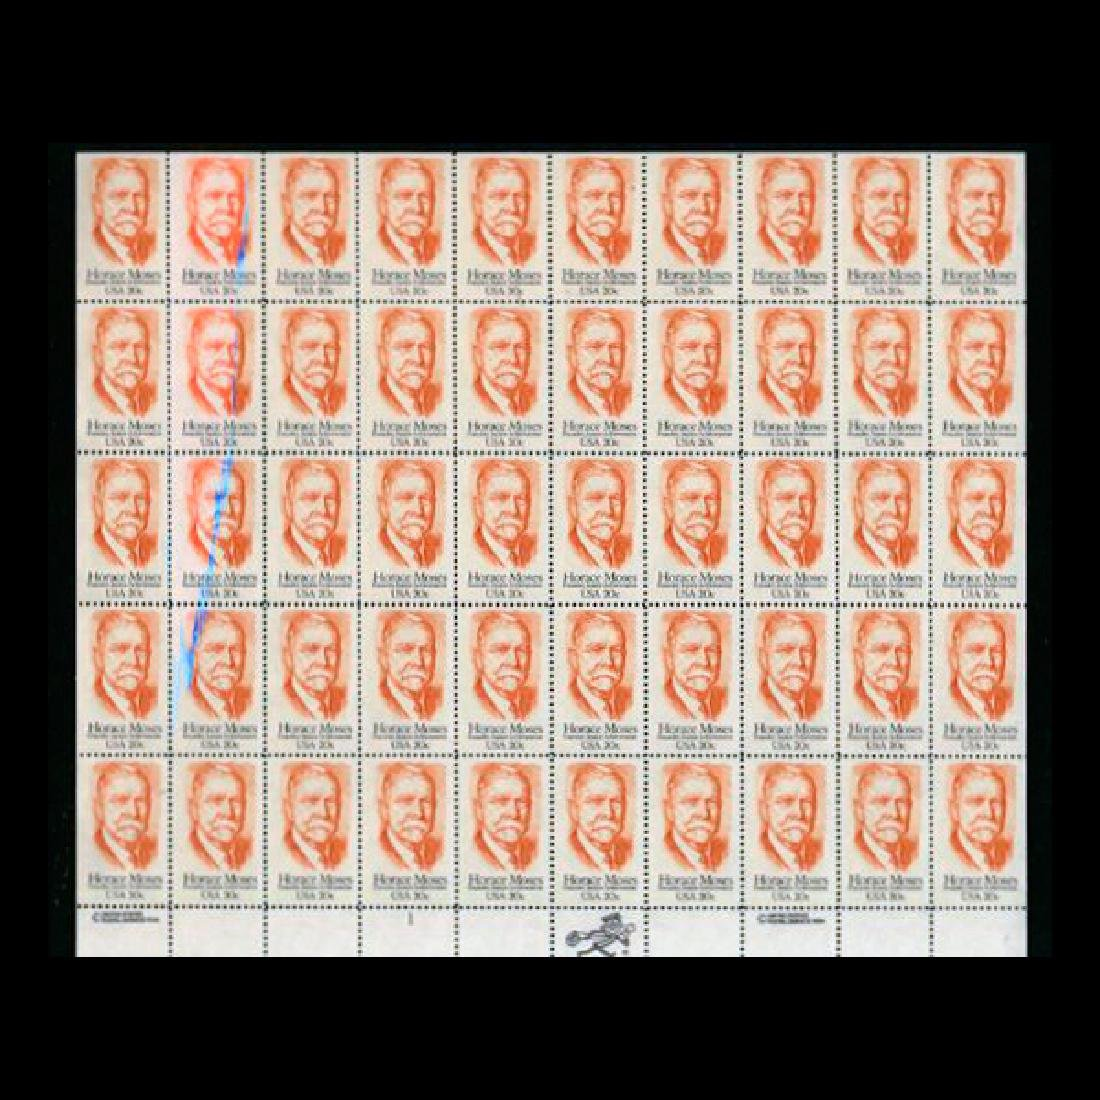 1984 US Sheet 20c Horace Moses Stamps MNH Error RARE